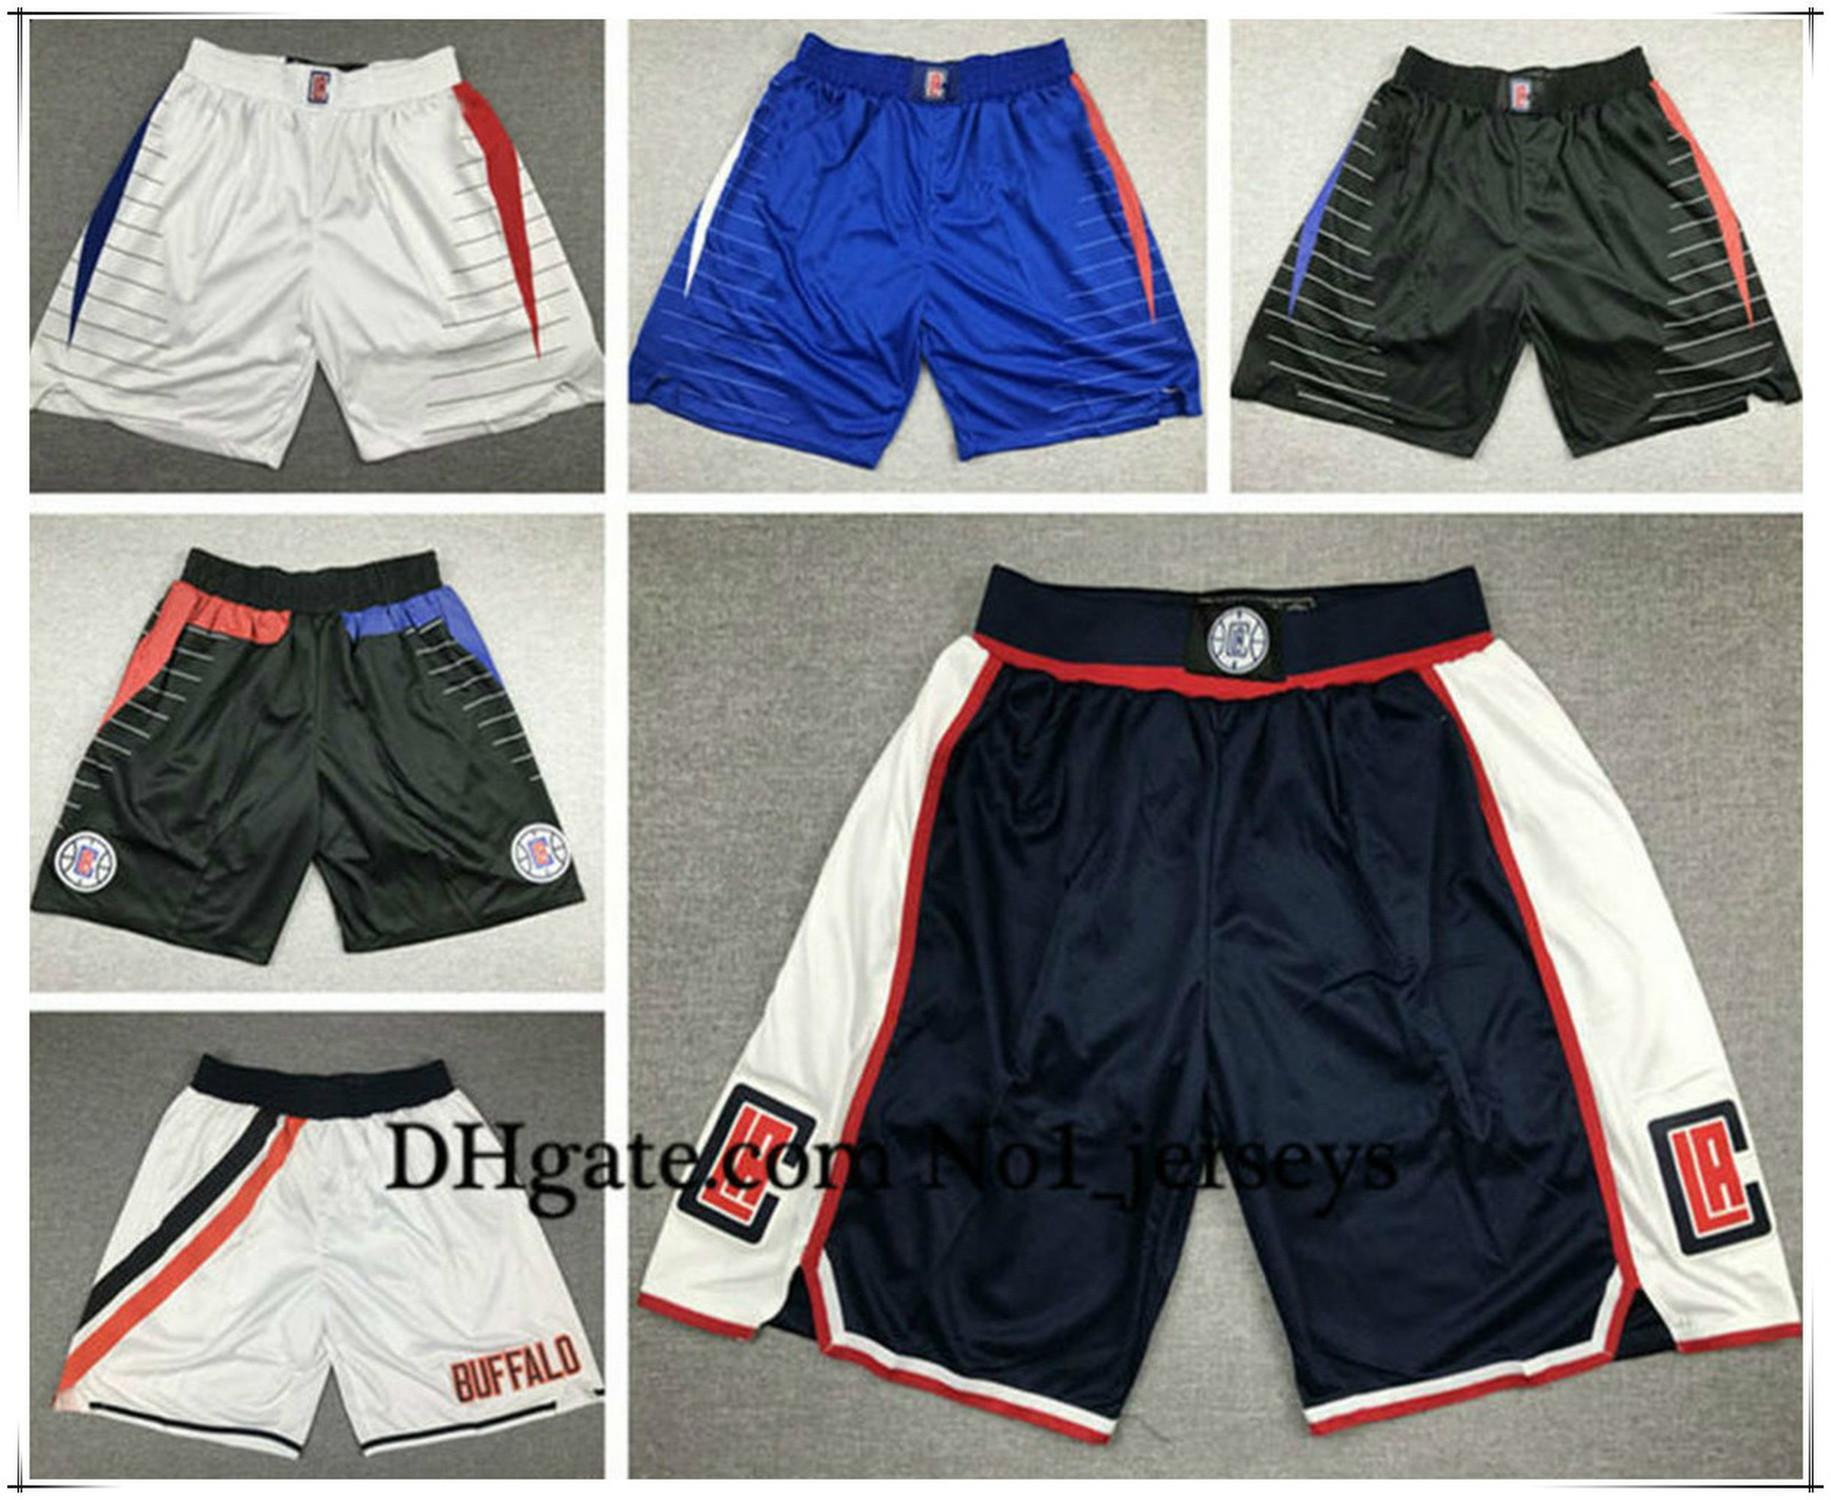 NCAA MensLAClippers Leonard 13 George 32 Griffin Stitched Shorts Vintage Breathable Pants Sweatpants Classic Basketball Shorts